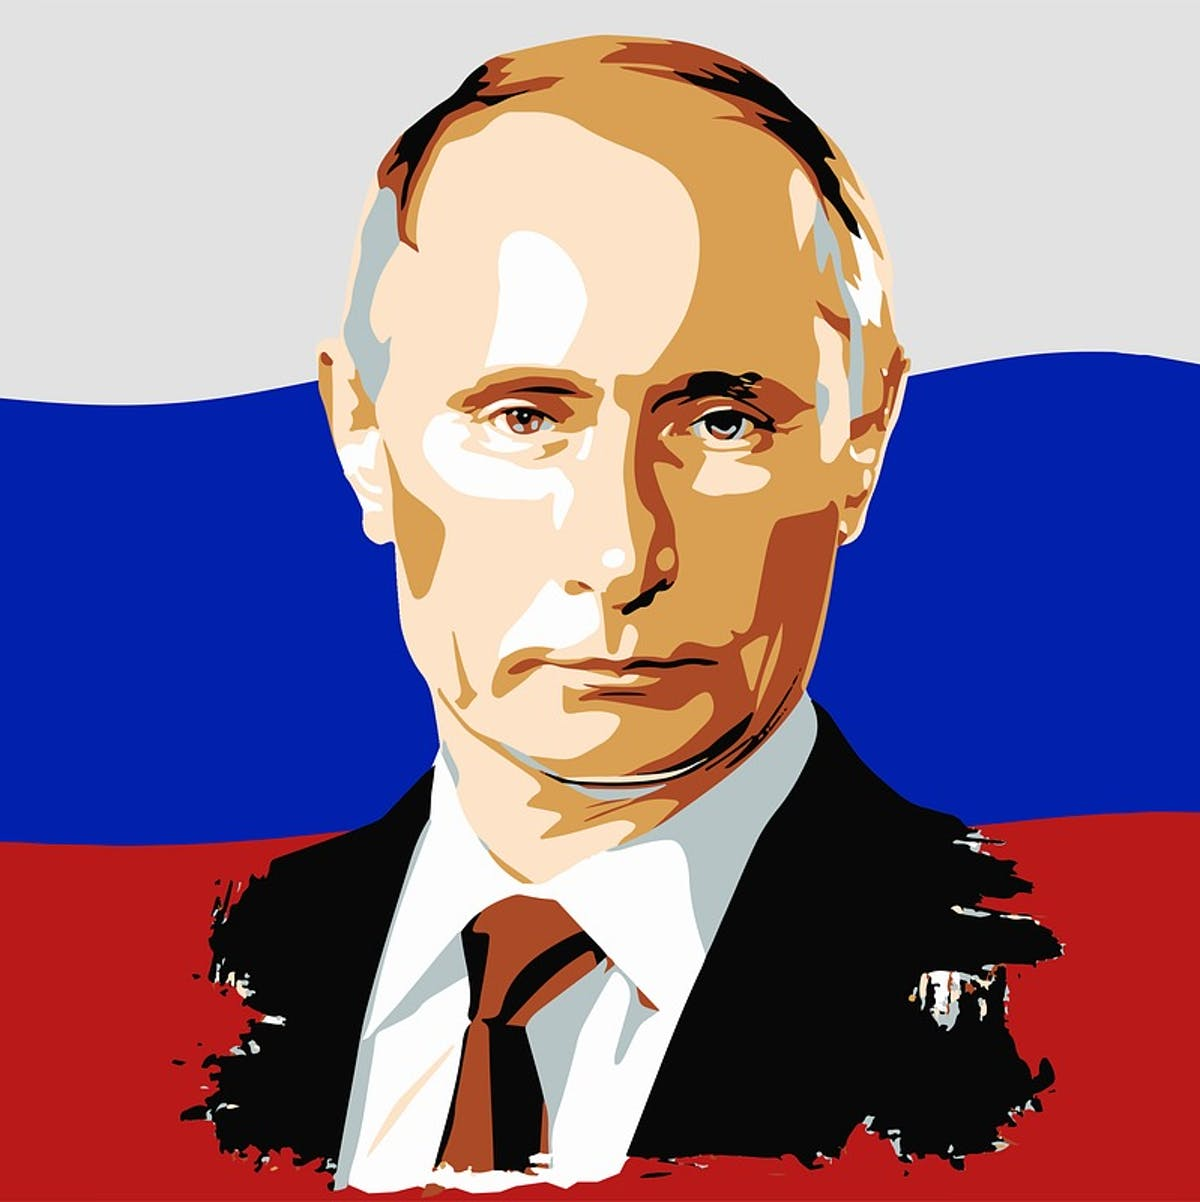 Russian internet censorship could come to the U.S.